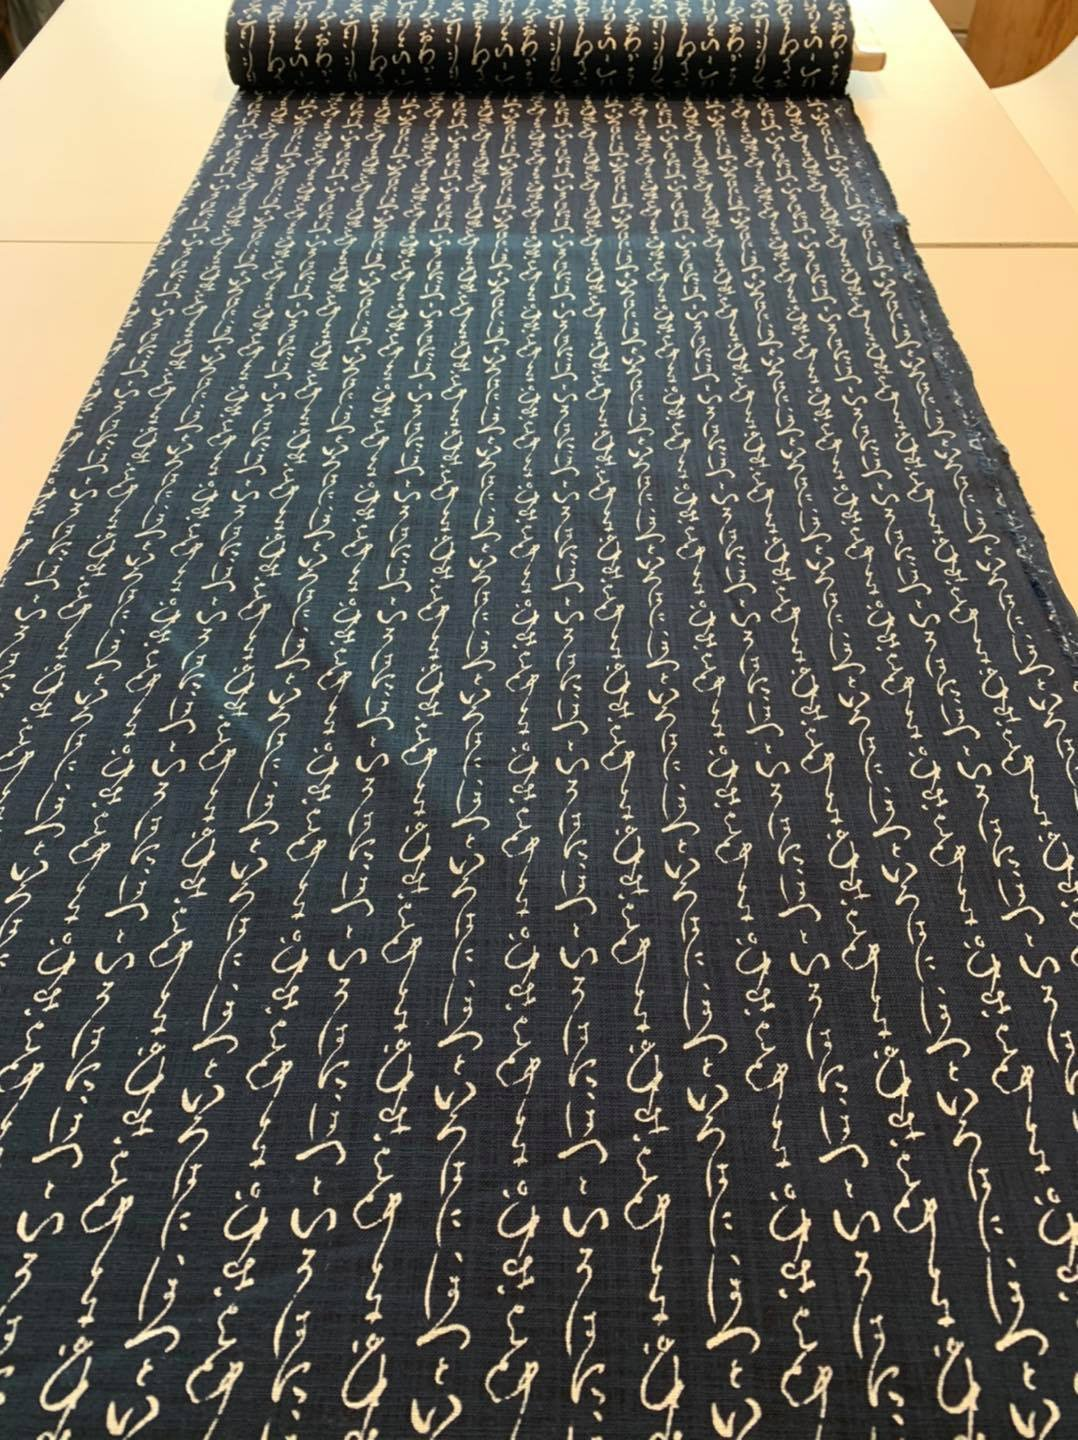 Calligraphy on Nara Homespun